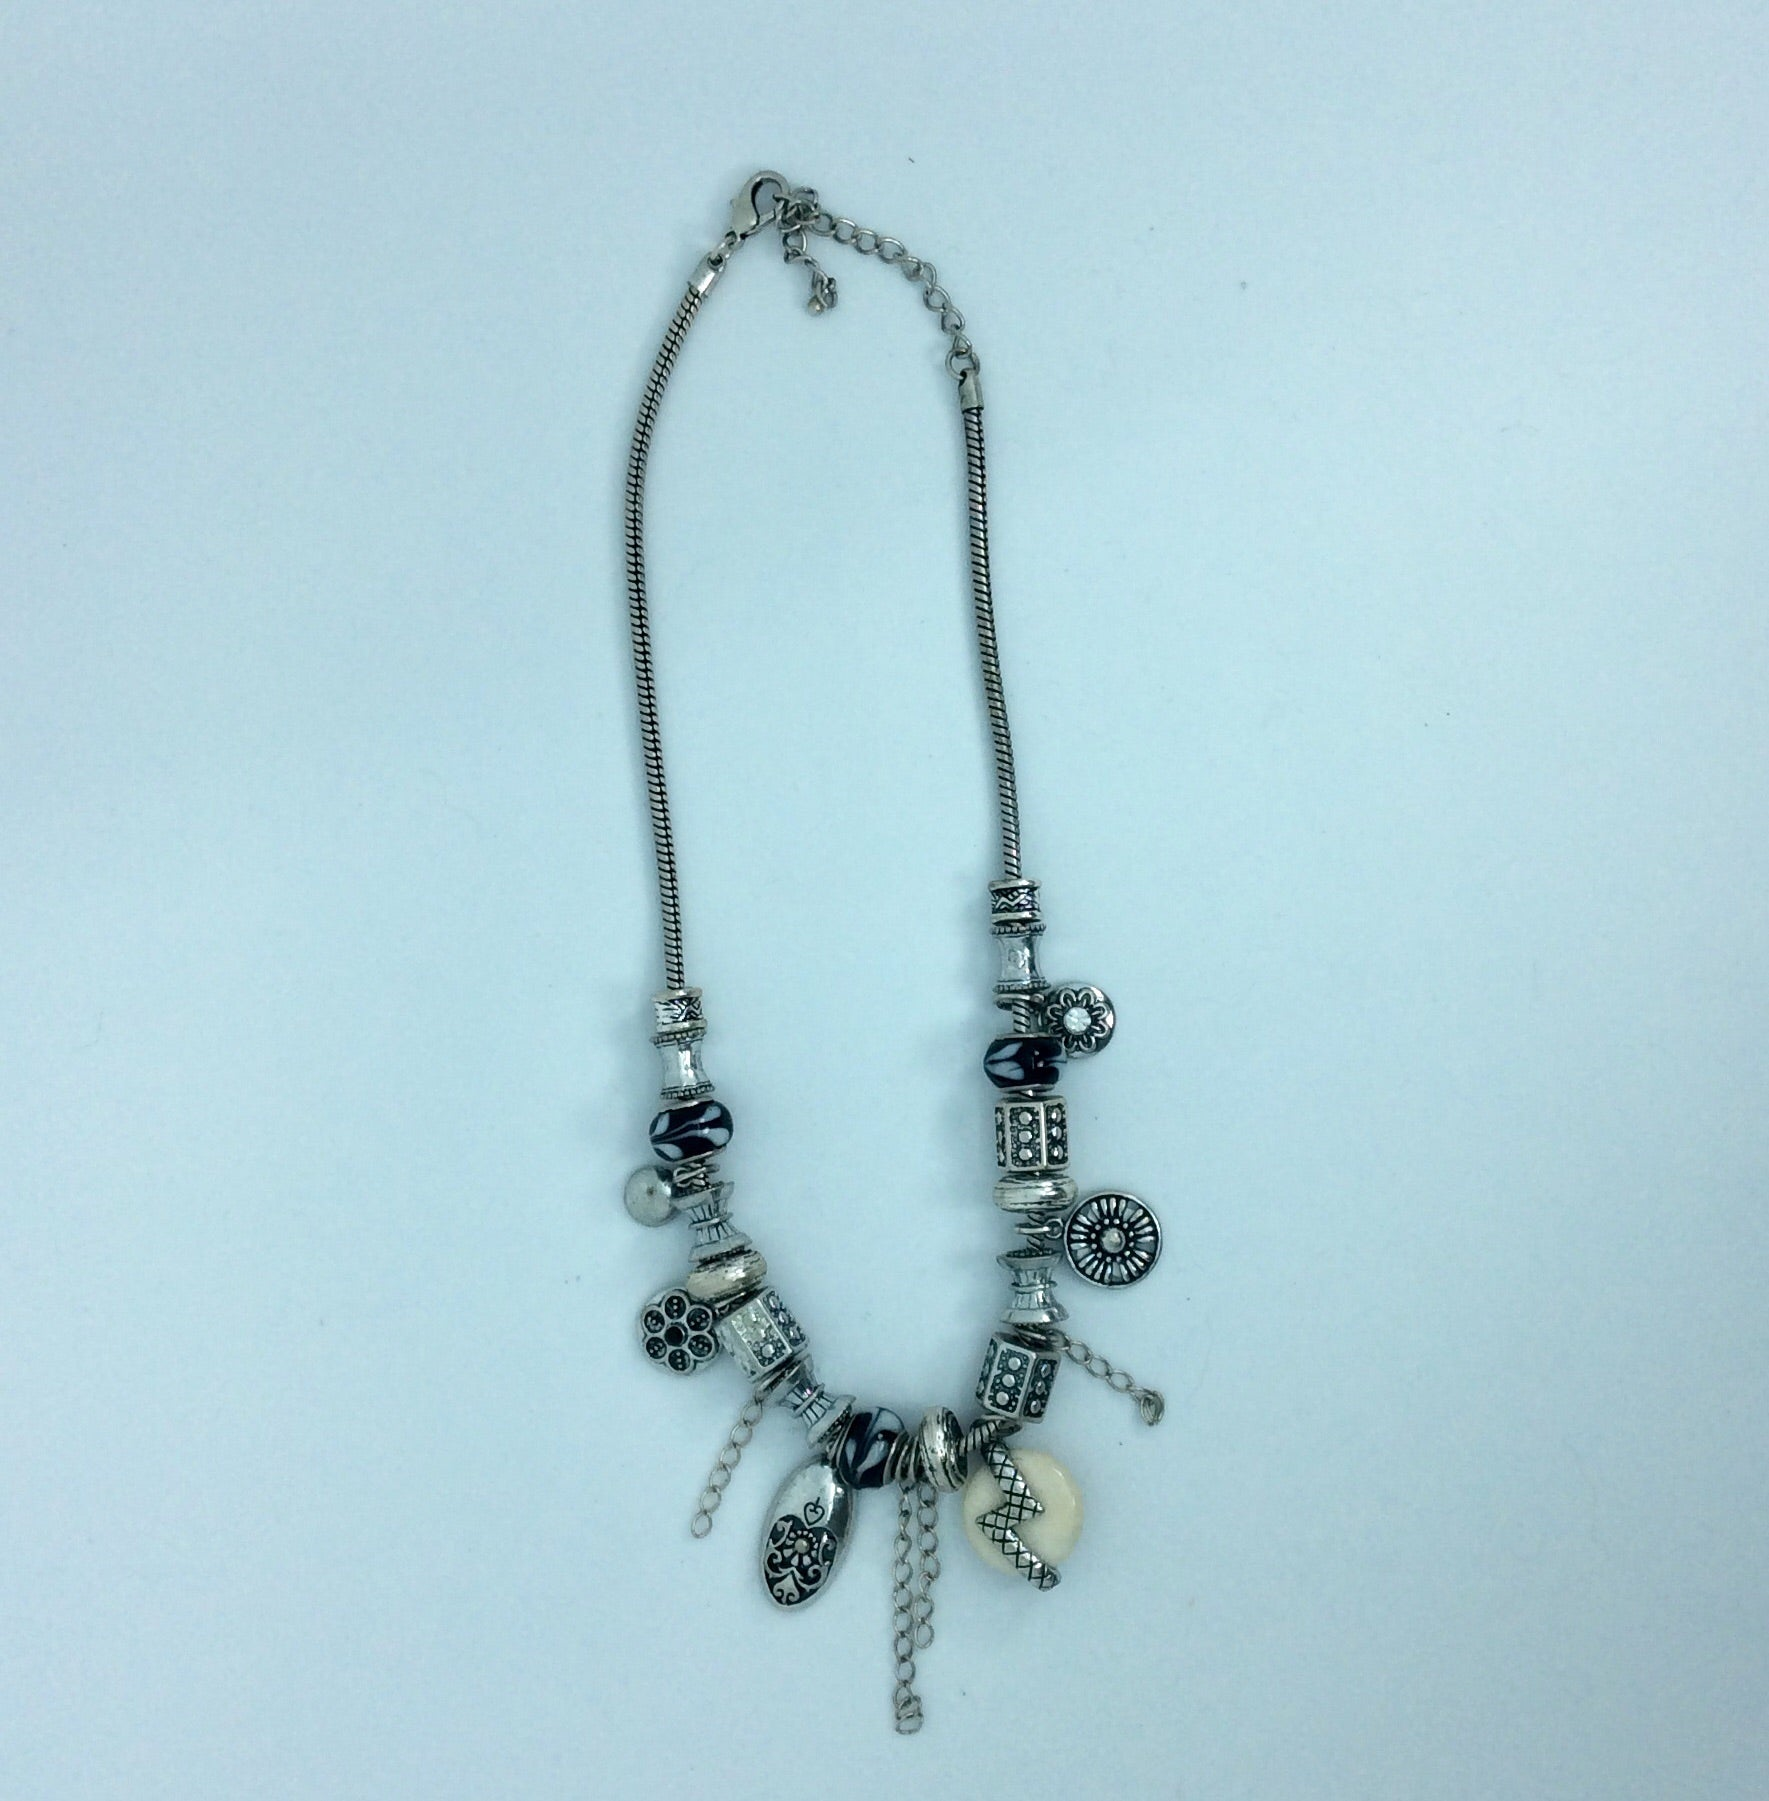 Silver ethnic charm necklace with black and white beads